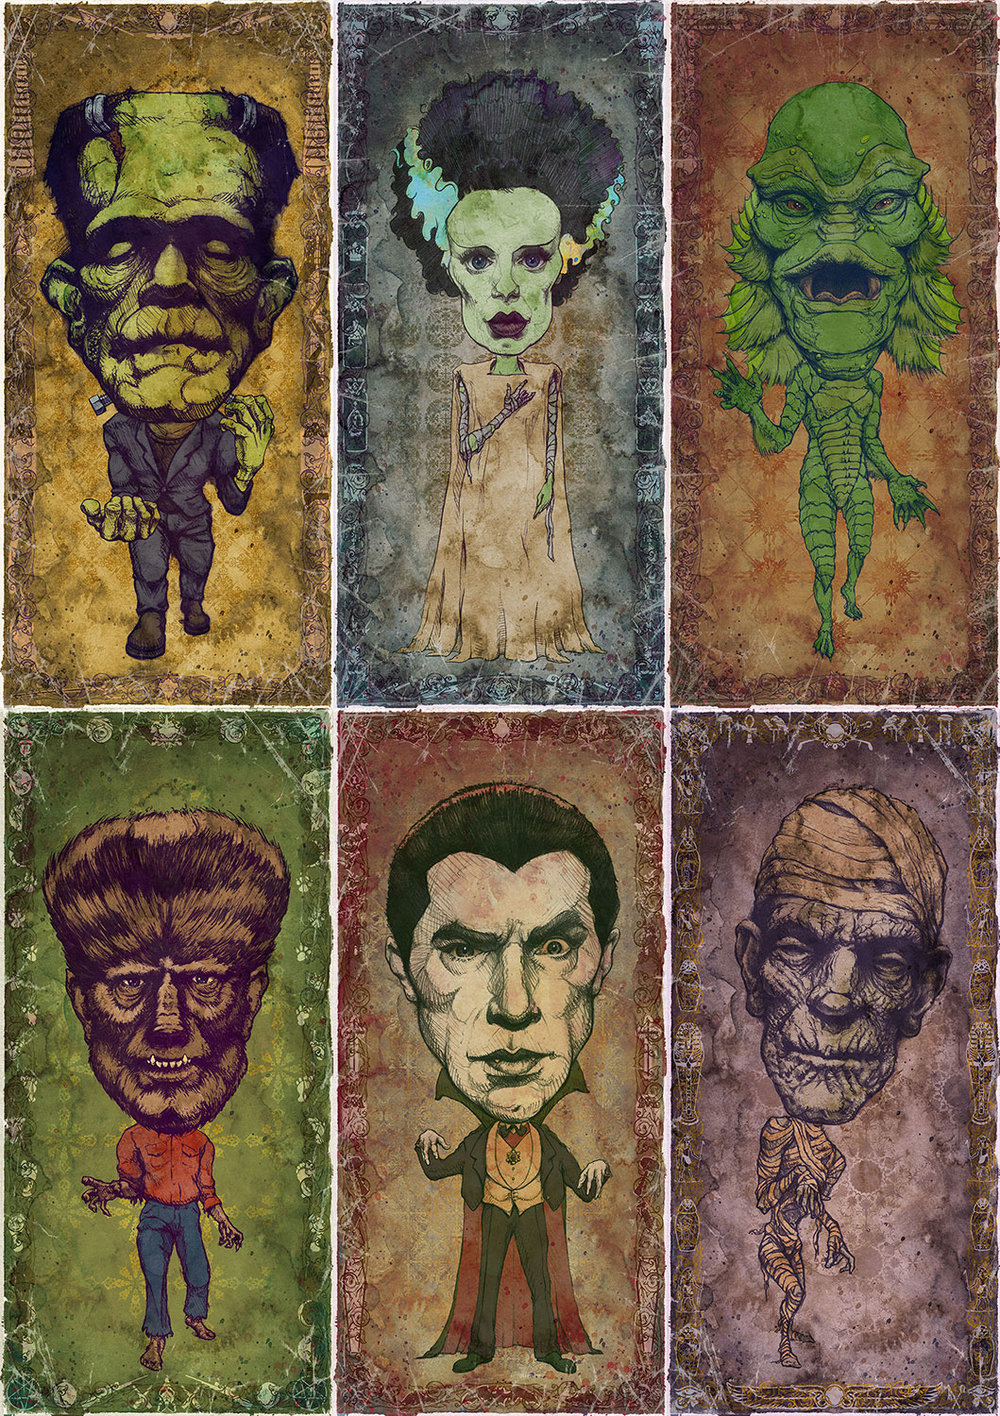 "Set of 6 Classic Monster Mini Art Prints    6 individual 4 1/2"" x 9"" Prints    Each signed and numbered on archival paper    $59 ($5 Savings!)    Click image to purchase"